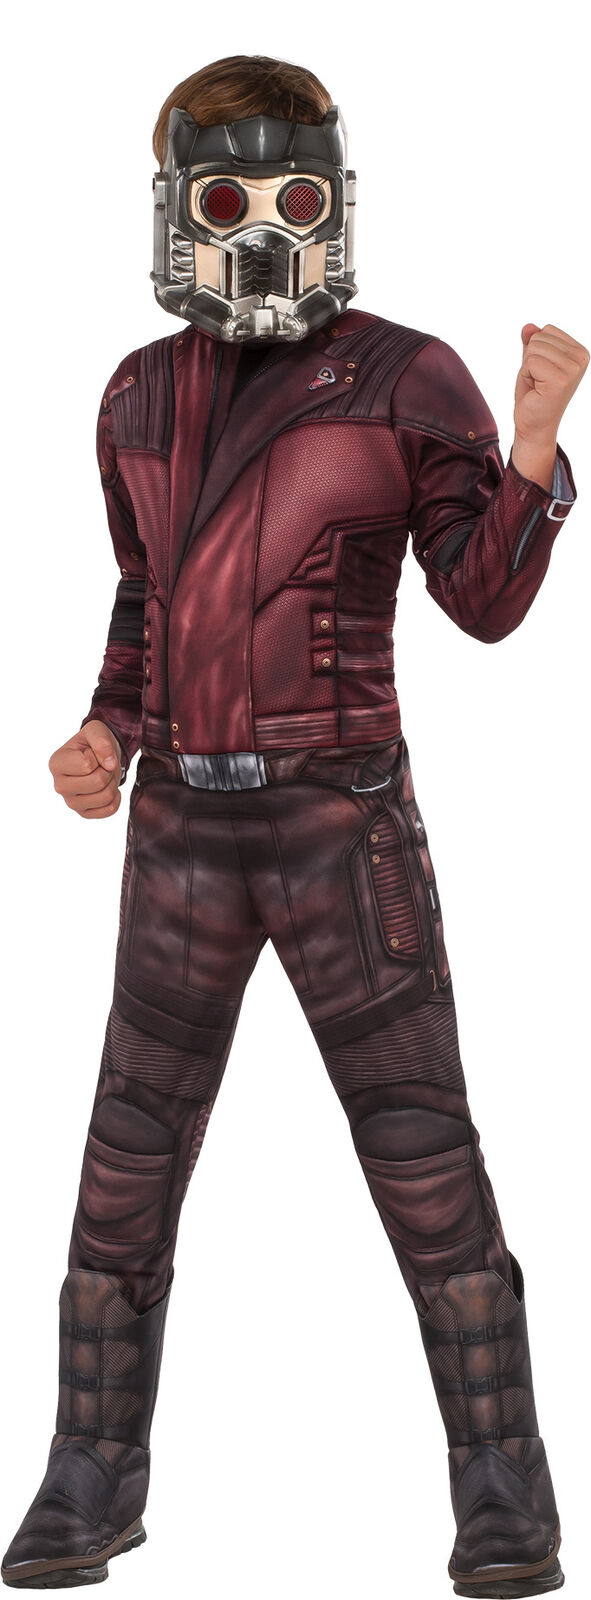 Guardians of The Galaxy Vol. 2 - Starlord Child Deluxe Muscle Costume